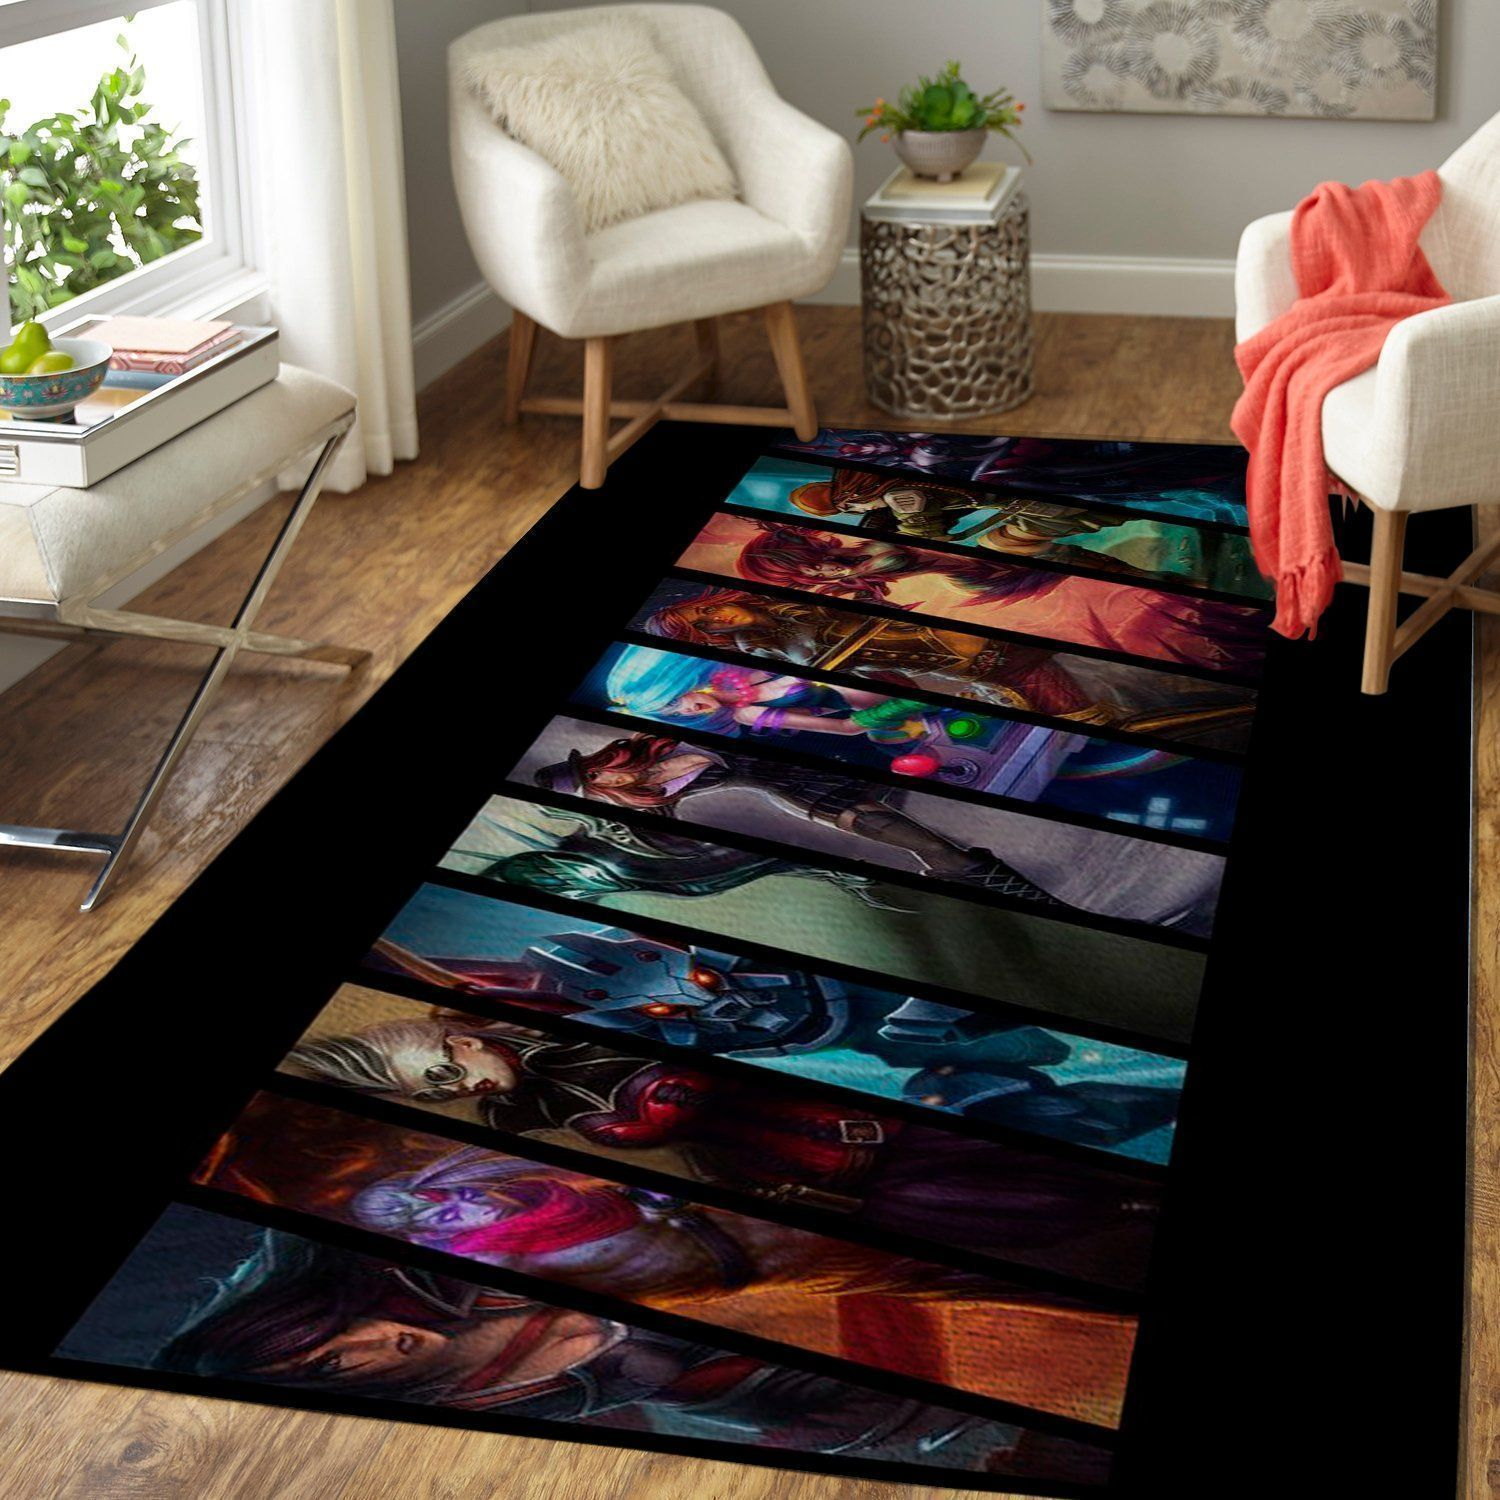 League Of Legends LOL Area Rug / Gaming Carpet, Gamer Living Room Rugs, Floor Decor 19091615